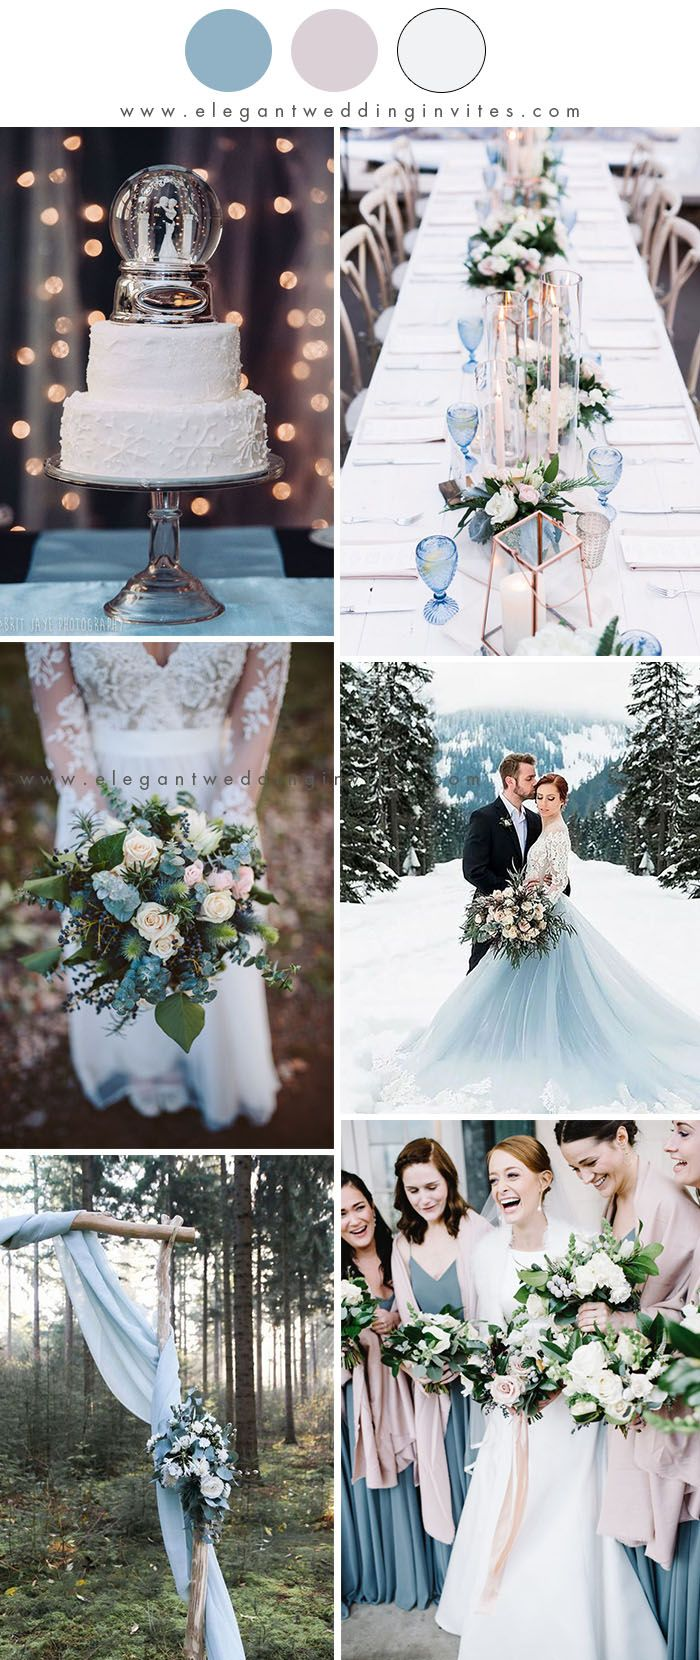 10 Best Winter Wedding Color Palettes For 2019 2020 In 2020